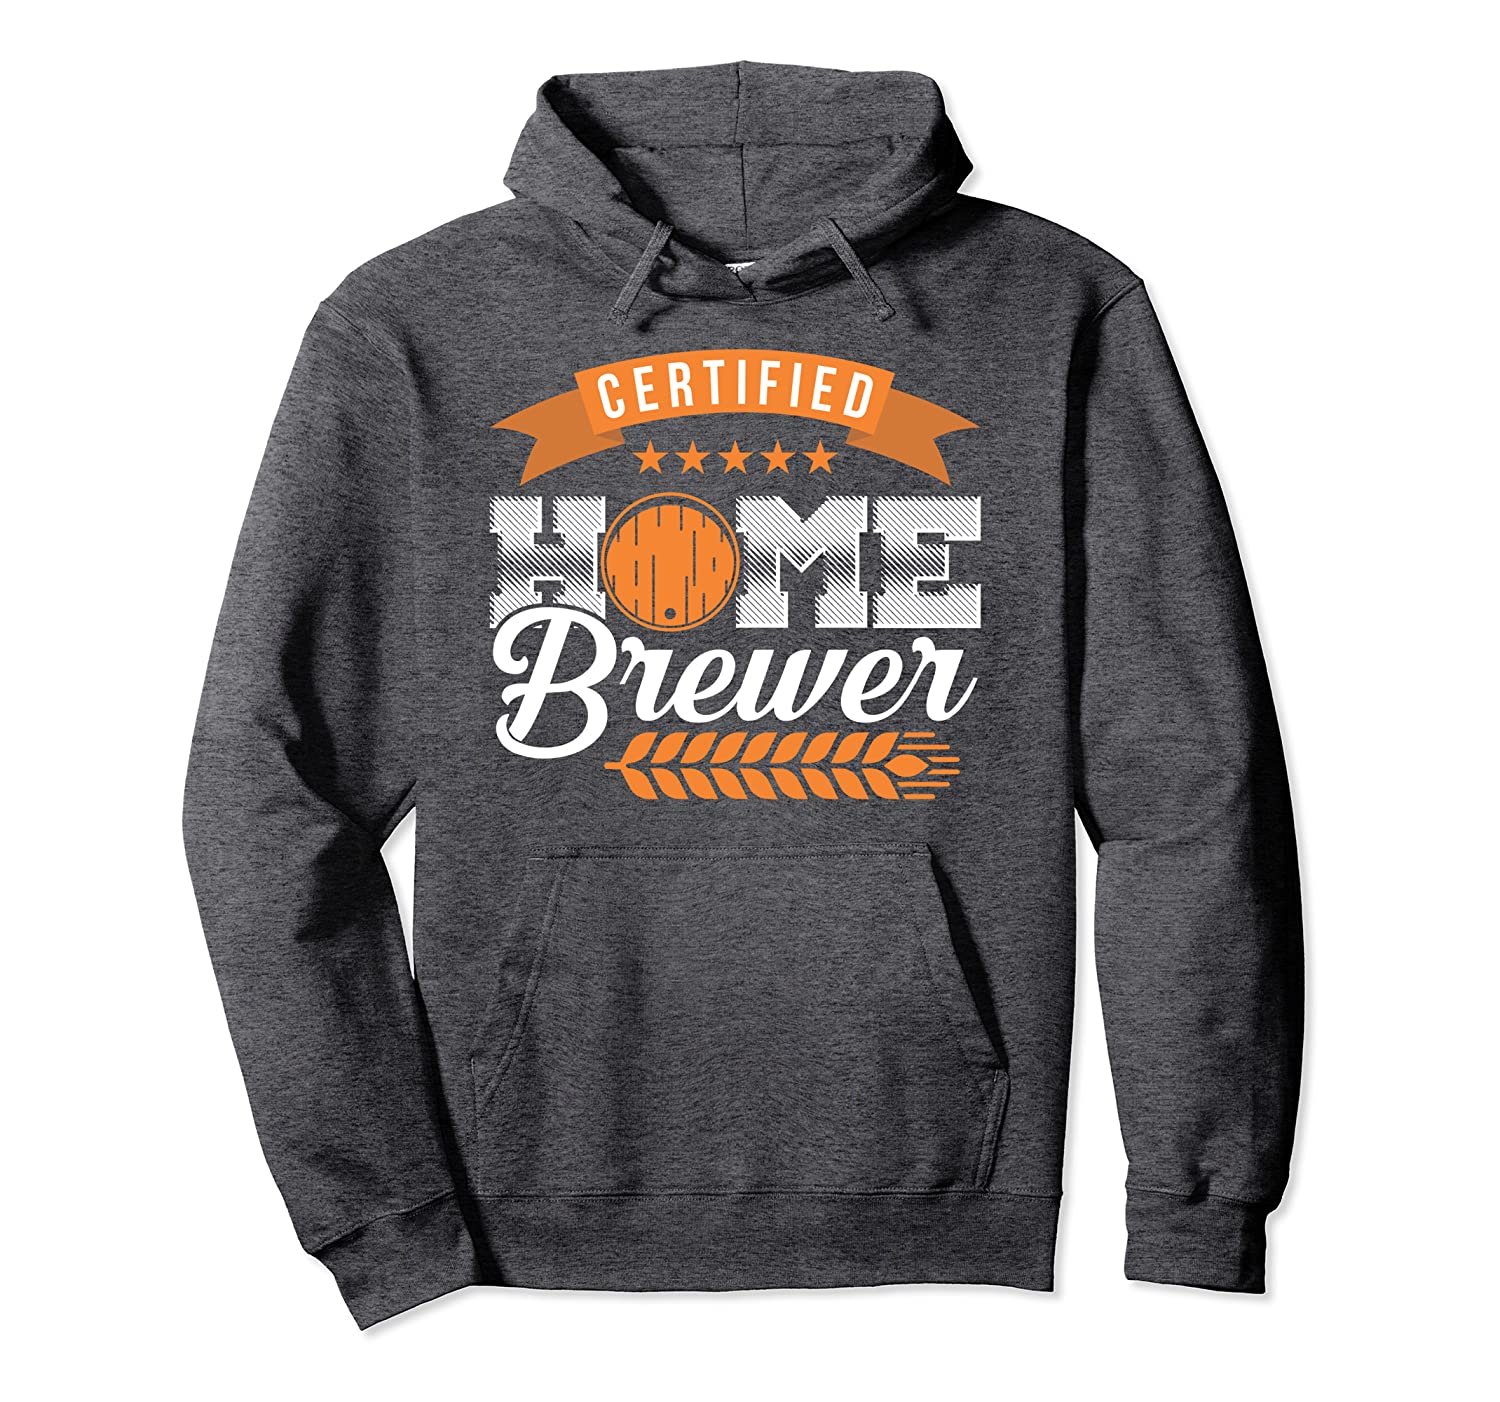 Funny Home Brew Beer Pullover Hoodie